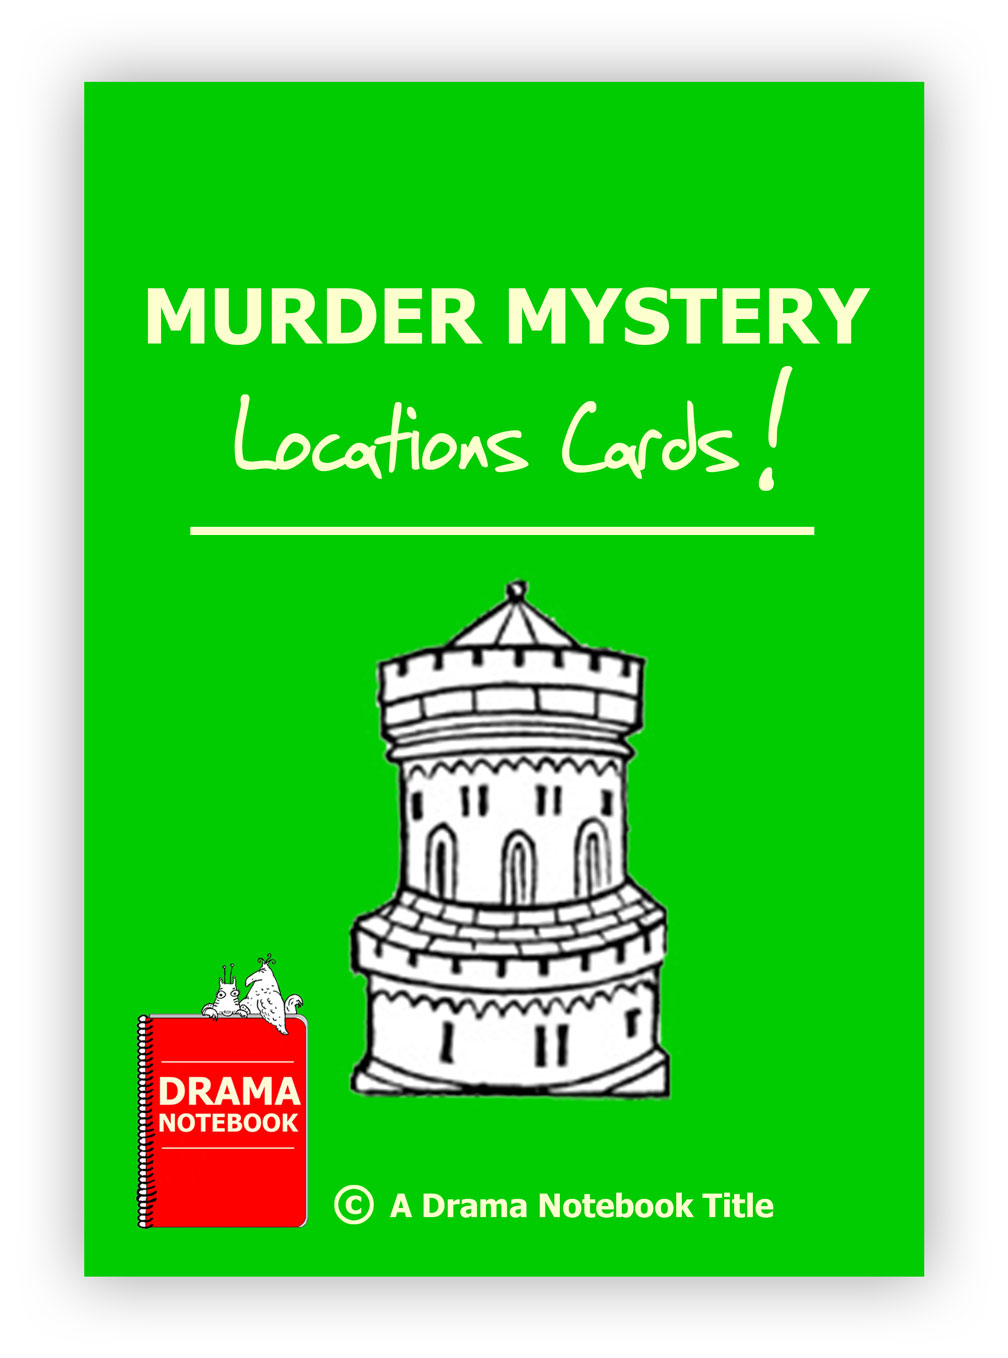 Murder Mystery Location Cards